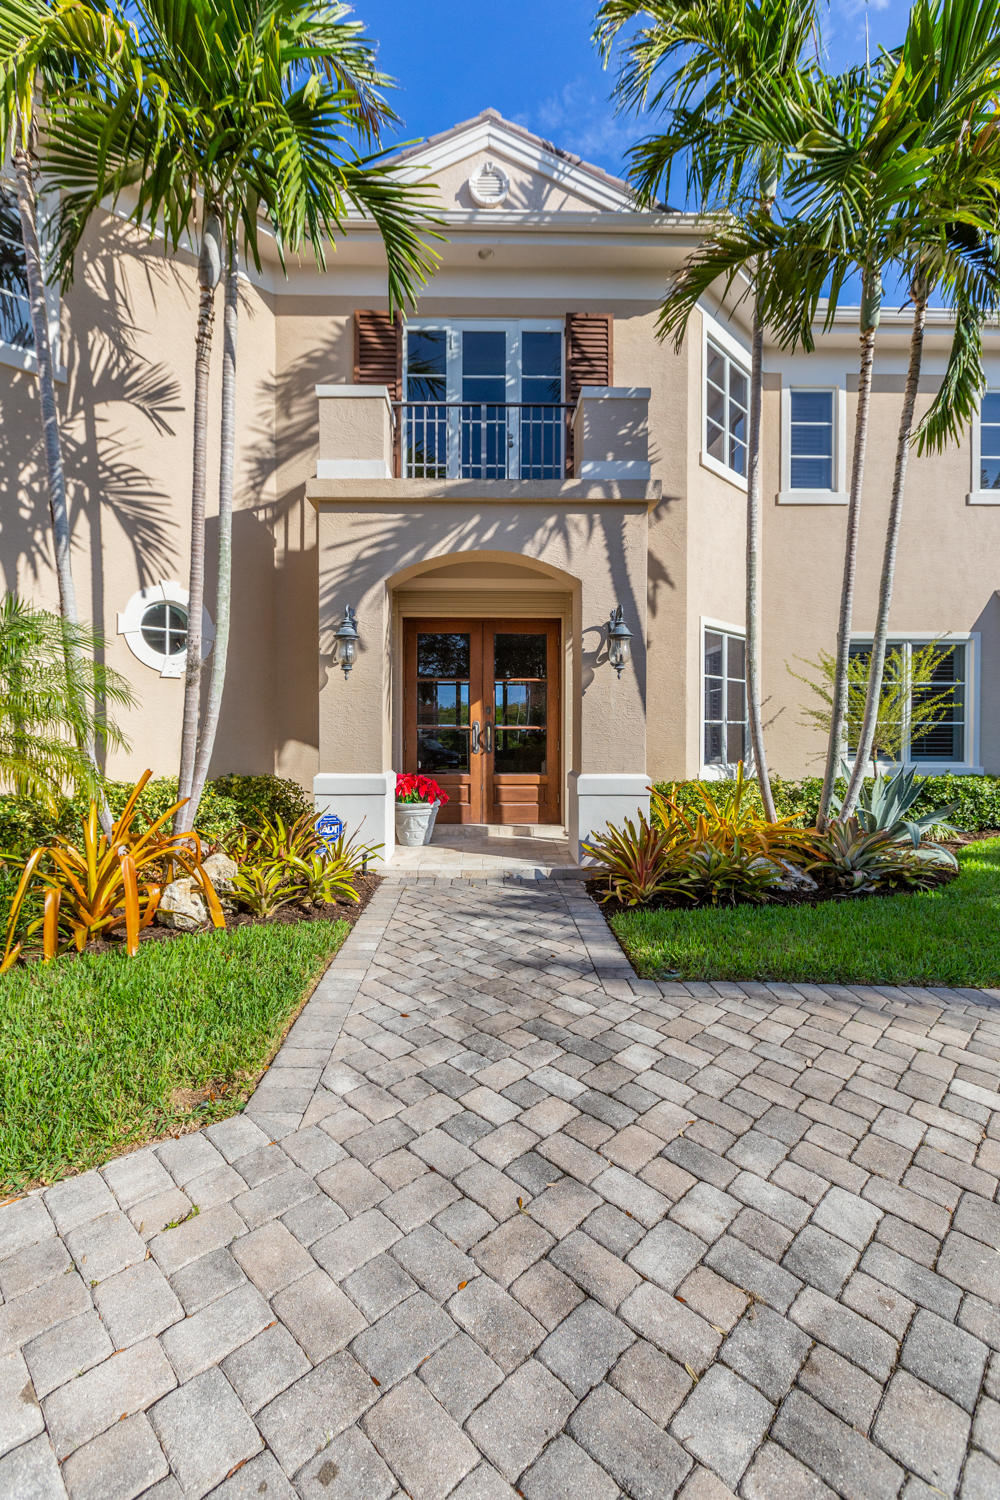 THE SOUNDINGS HOMES FOR SALE